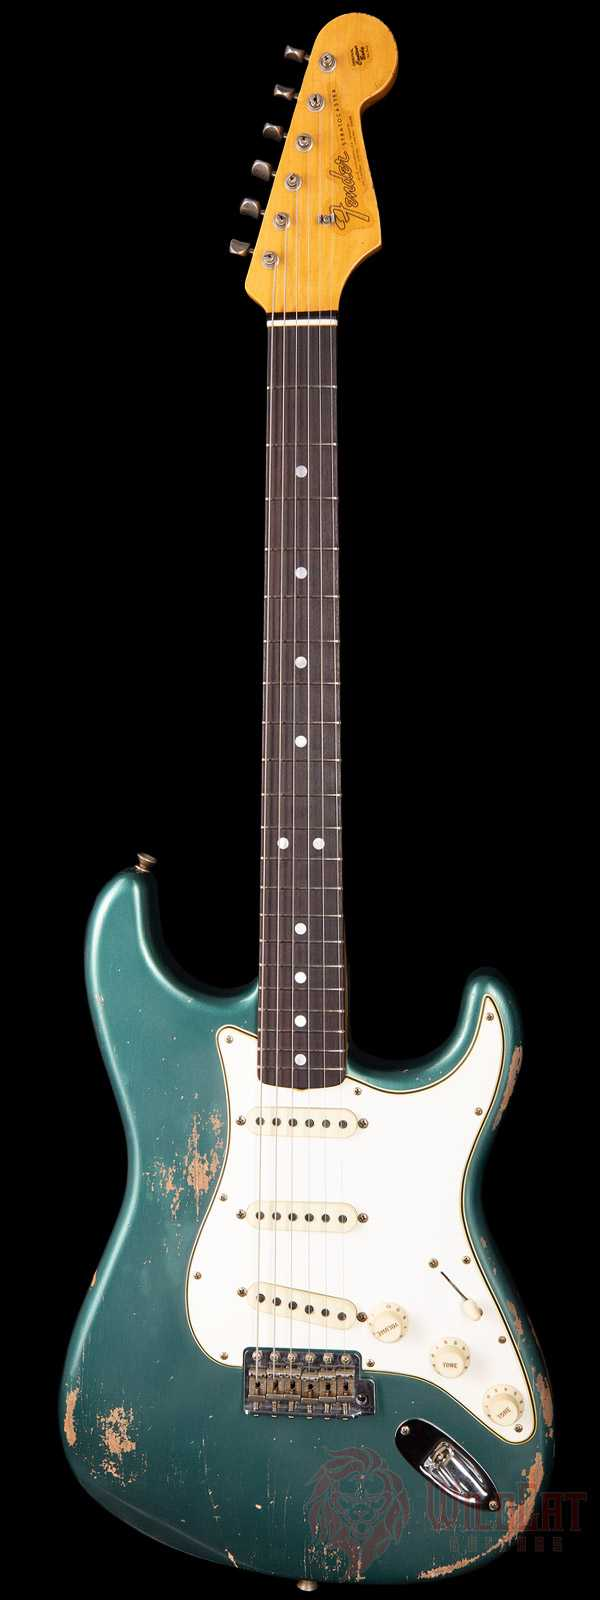 Fender Custom Shop Masterbuilt Greg Fessler 1964 Stratocaster Sherwood Green Metallic Relic